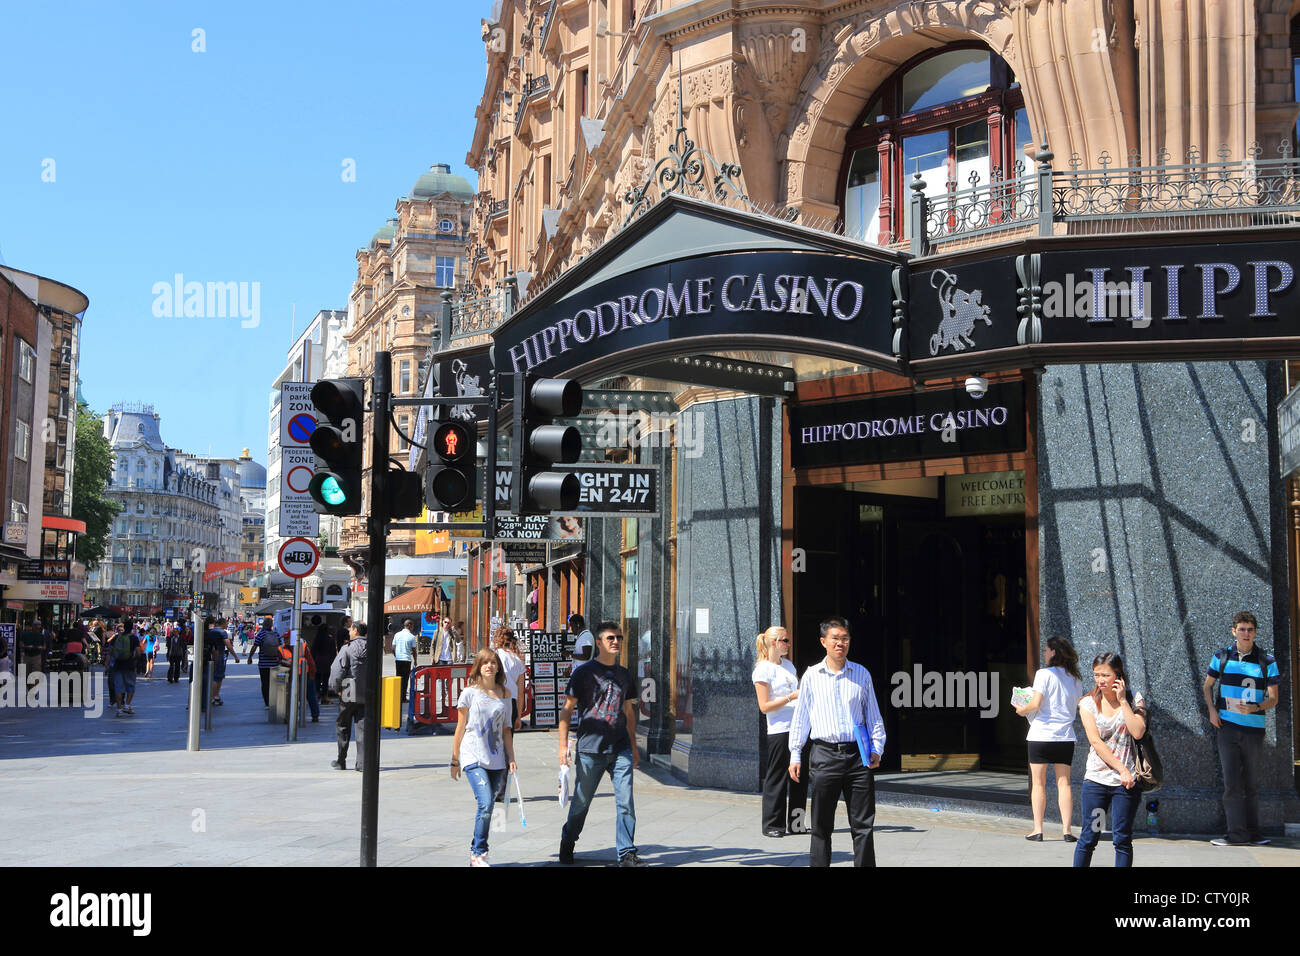 The Hippodrome Casino, near Leicester Square, in London's West End, UK - Stock Image